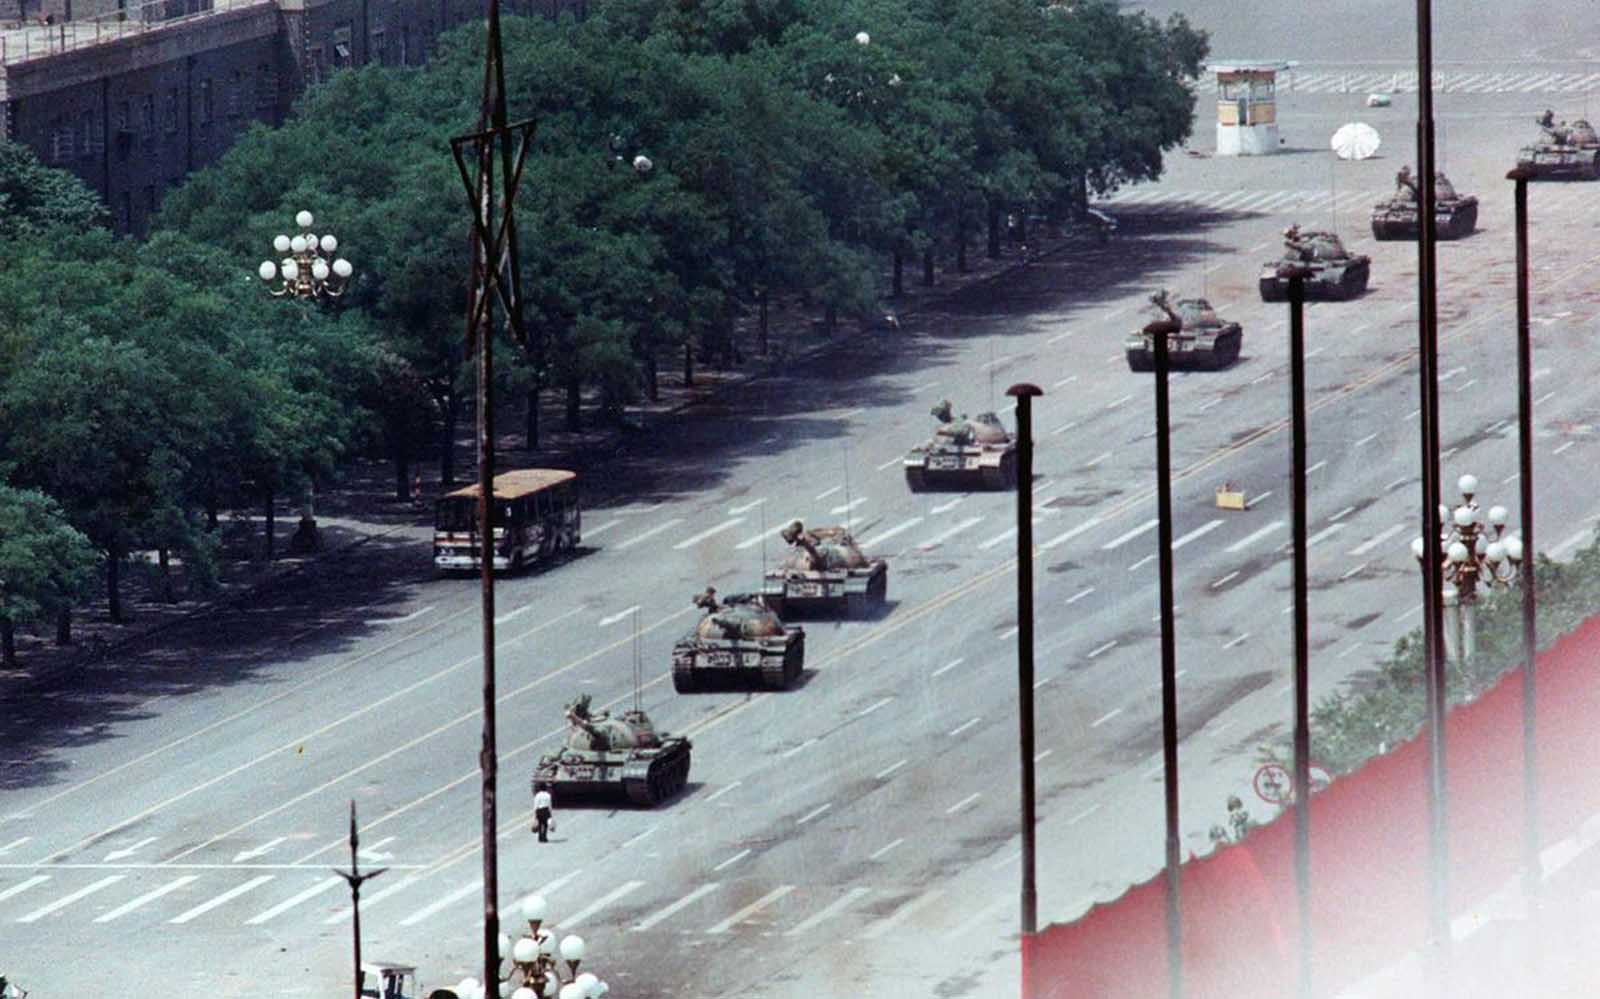 2 of 2) A citizen stands passively in front of Chinese tanks in this June 5, 1989, photo taken during the crushing of the Tiananmen Square uprising.